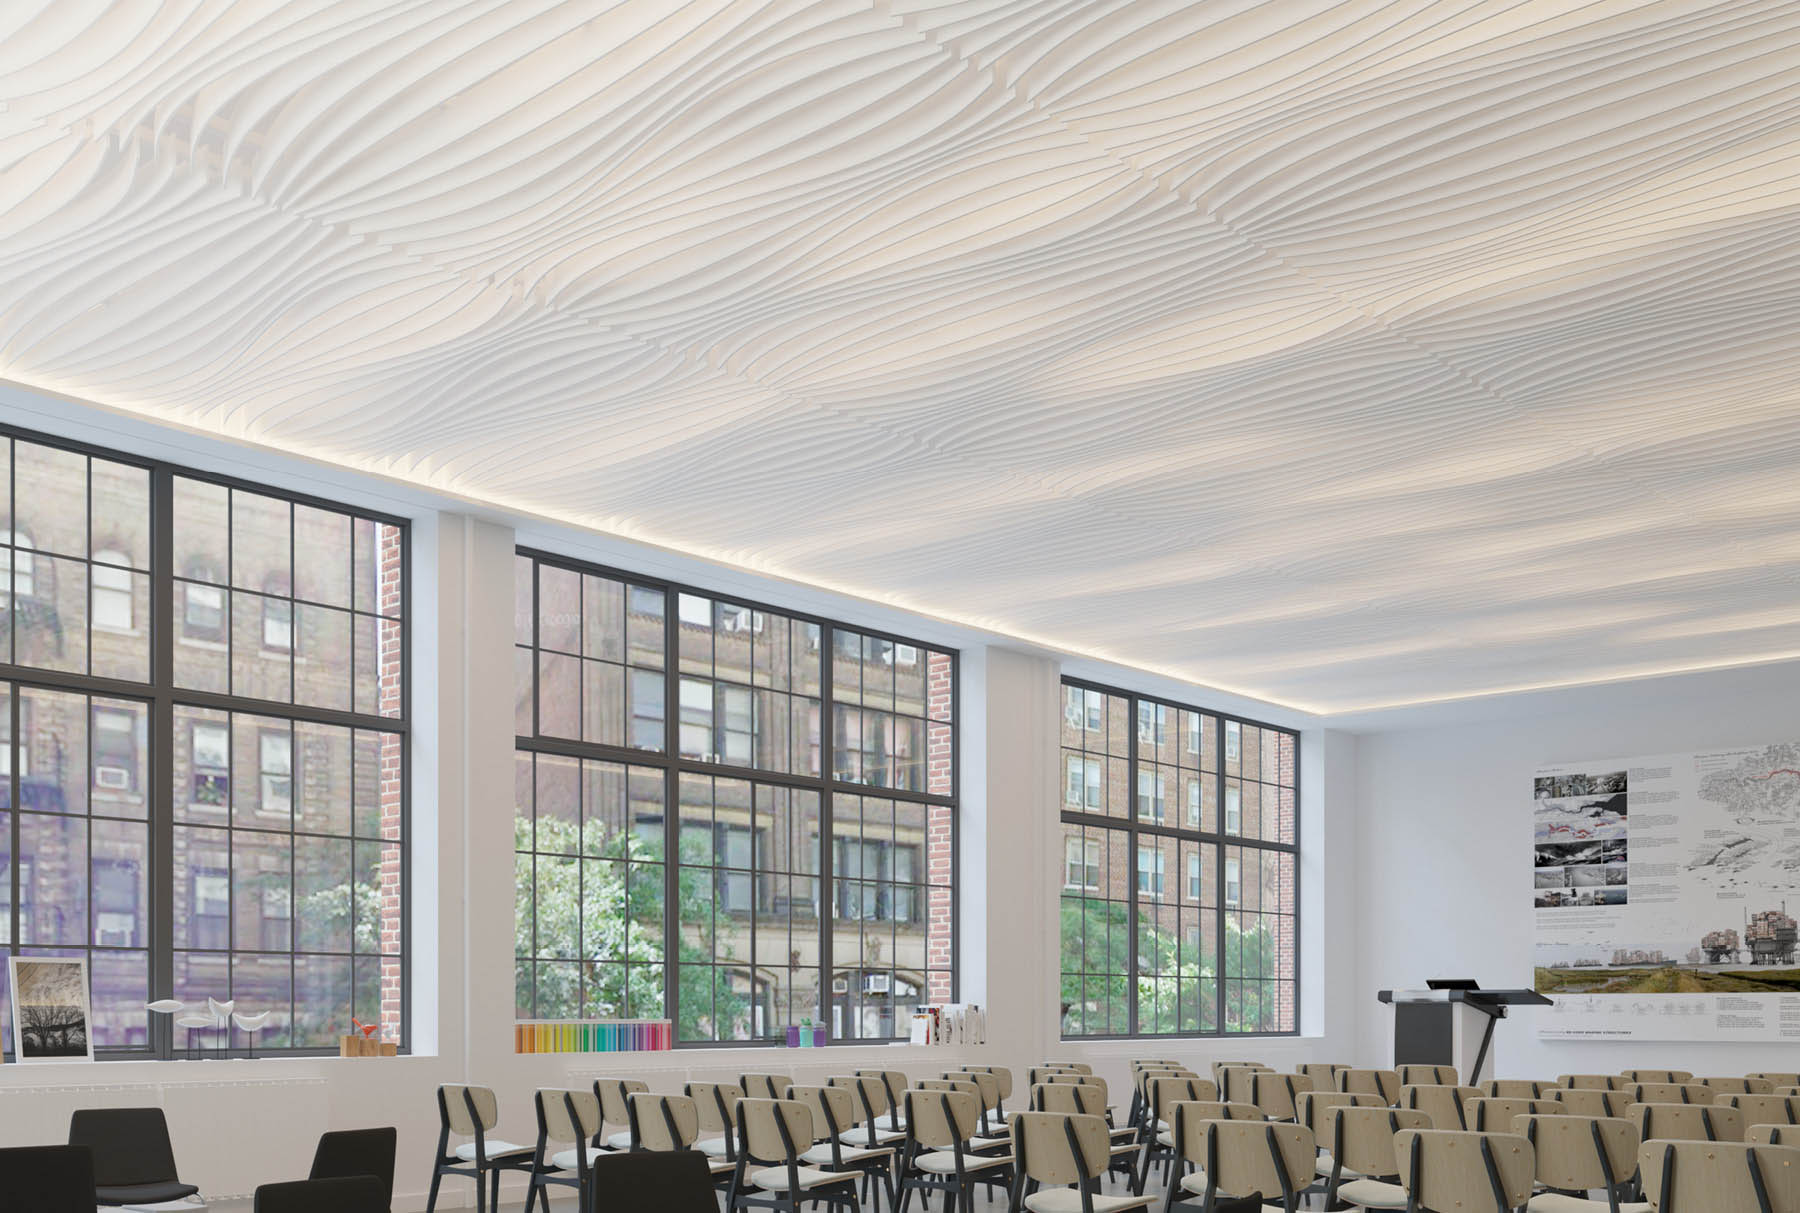 Atmosphera® Standard Flow above lecture space.